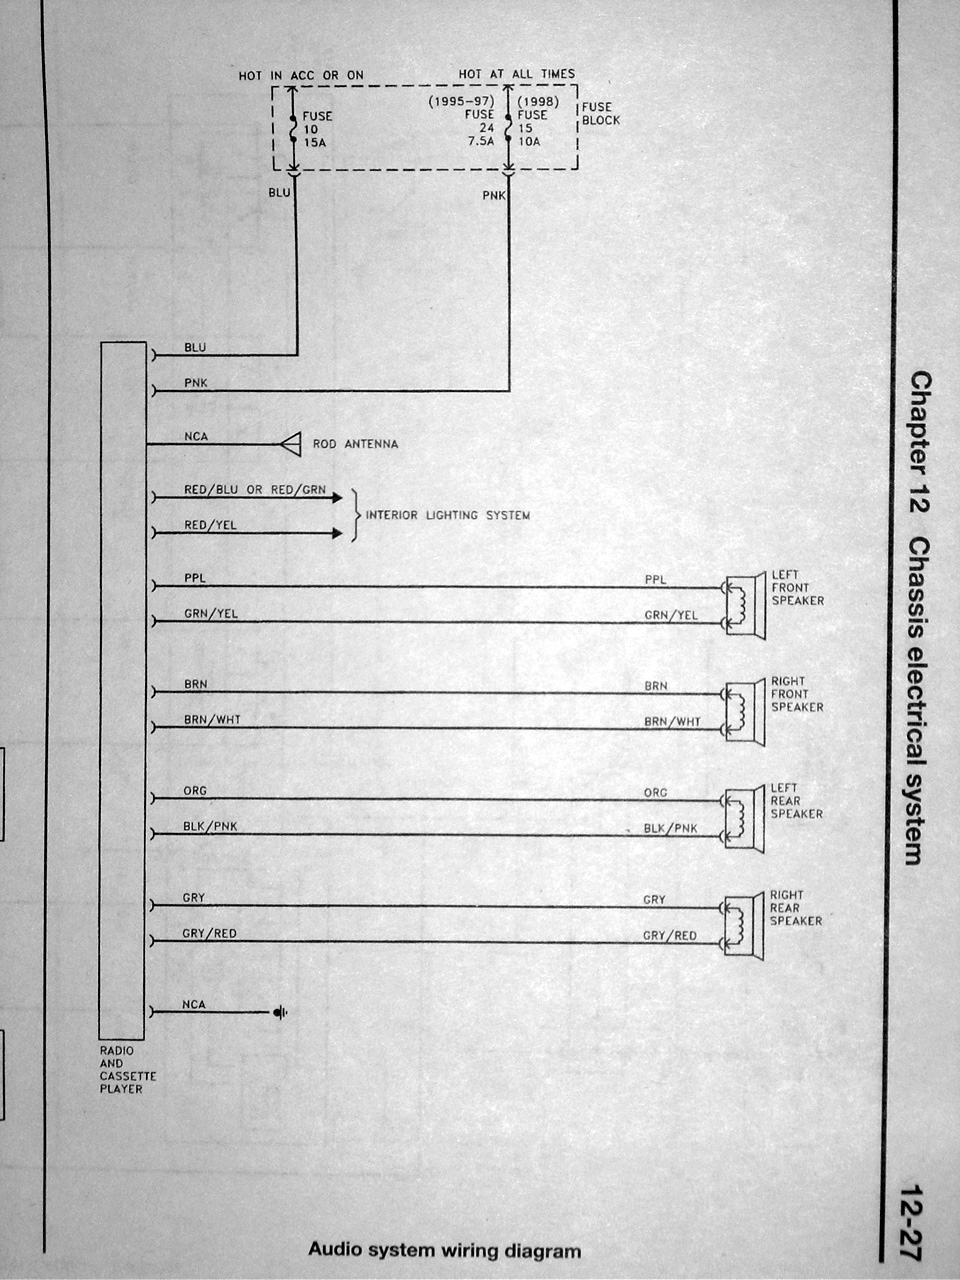 DSC01849 wiring diagram thread *useful info* nissan forum 2001 nissan pathfinder radio wiring diagram at reclaimingppi.co